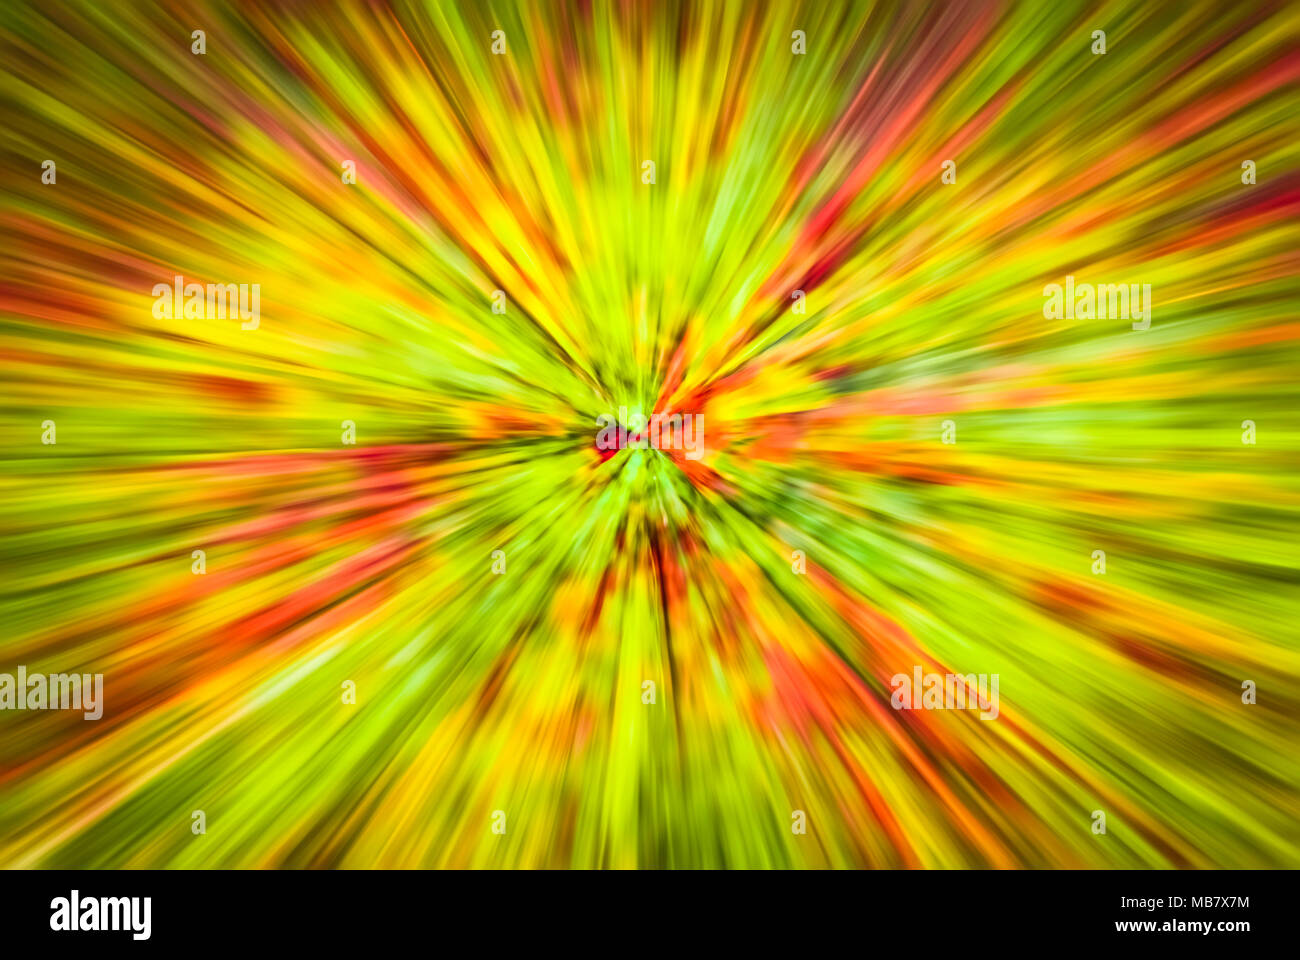 Psychedelic Hypnotic Unrealistic Abstract Speedy Pink Greed Background, motion blur effect, zoom motion blur. - Stock Image